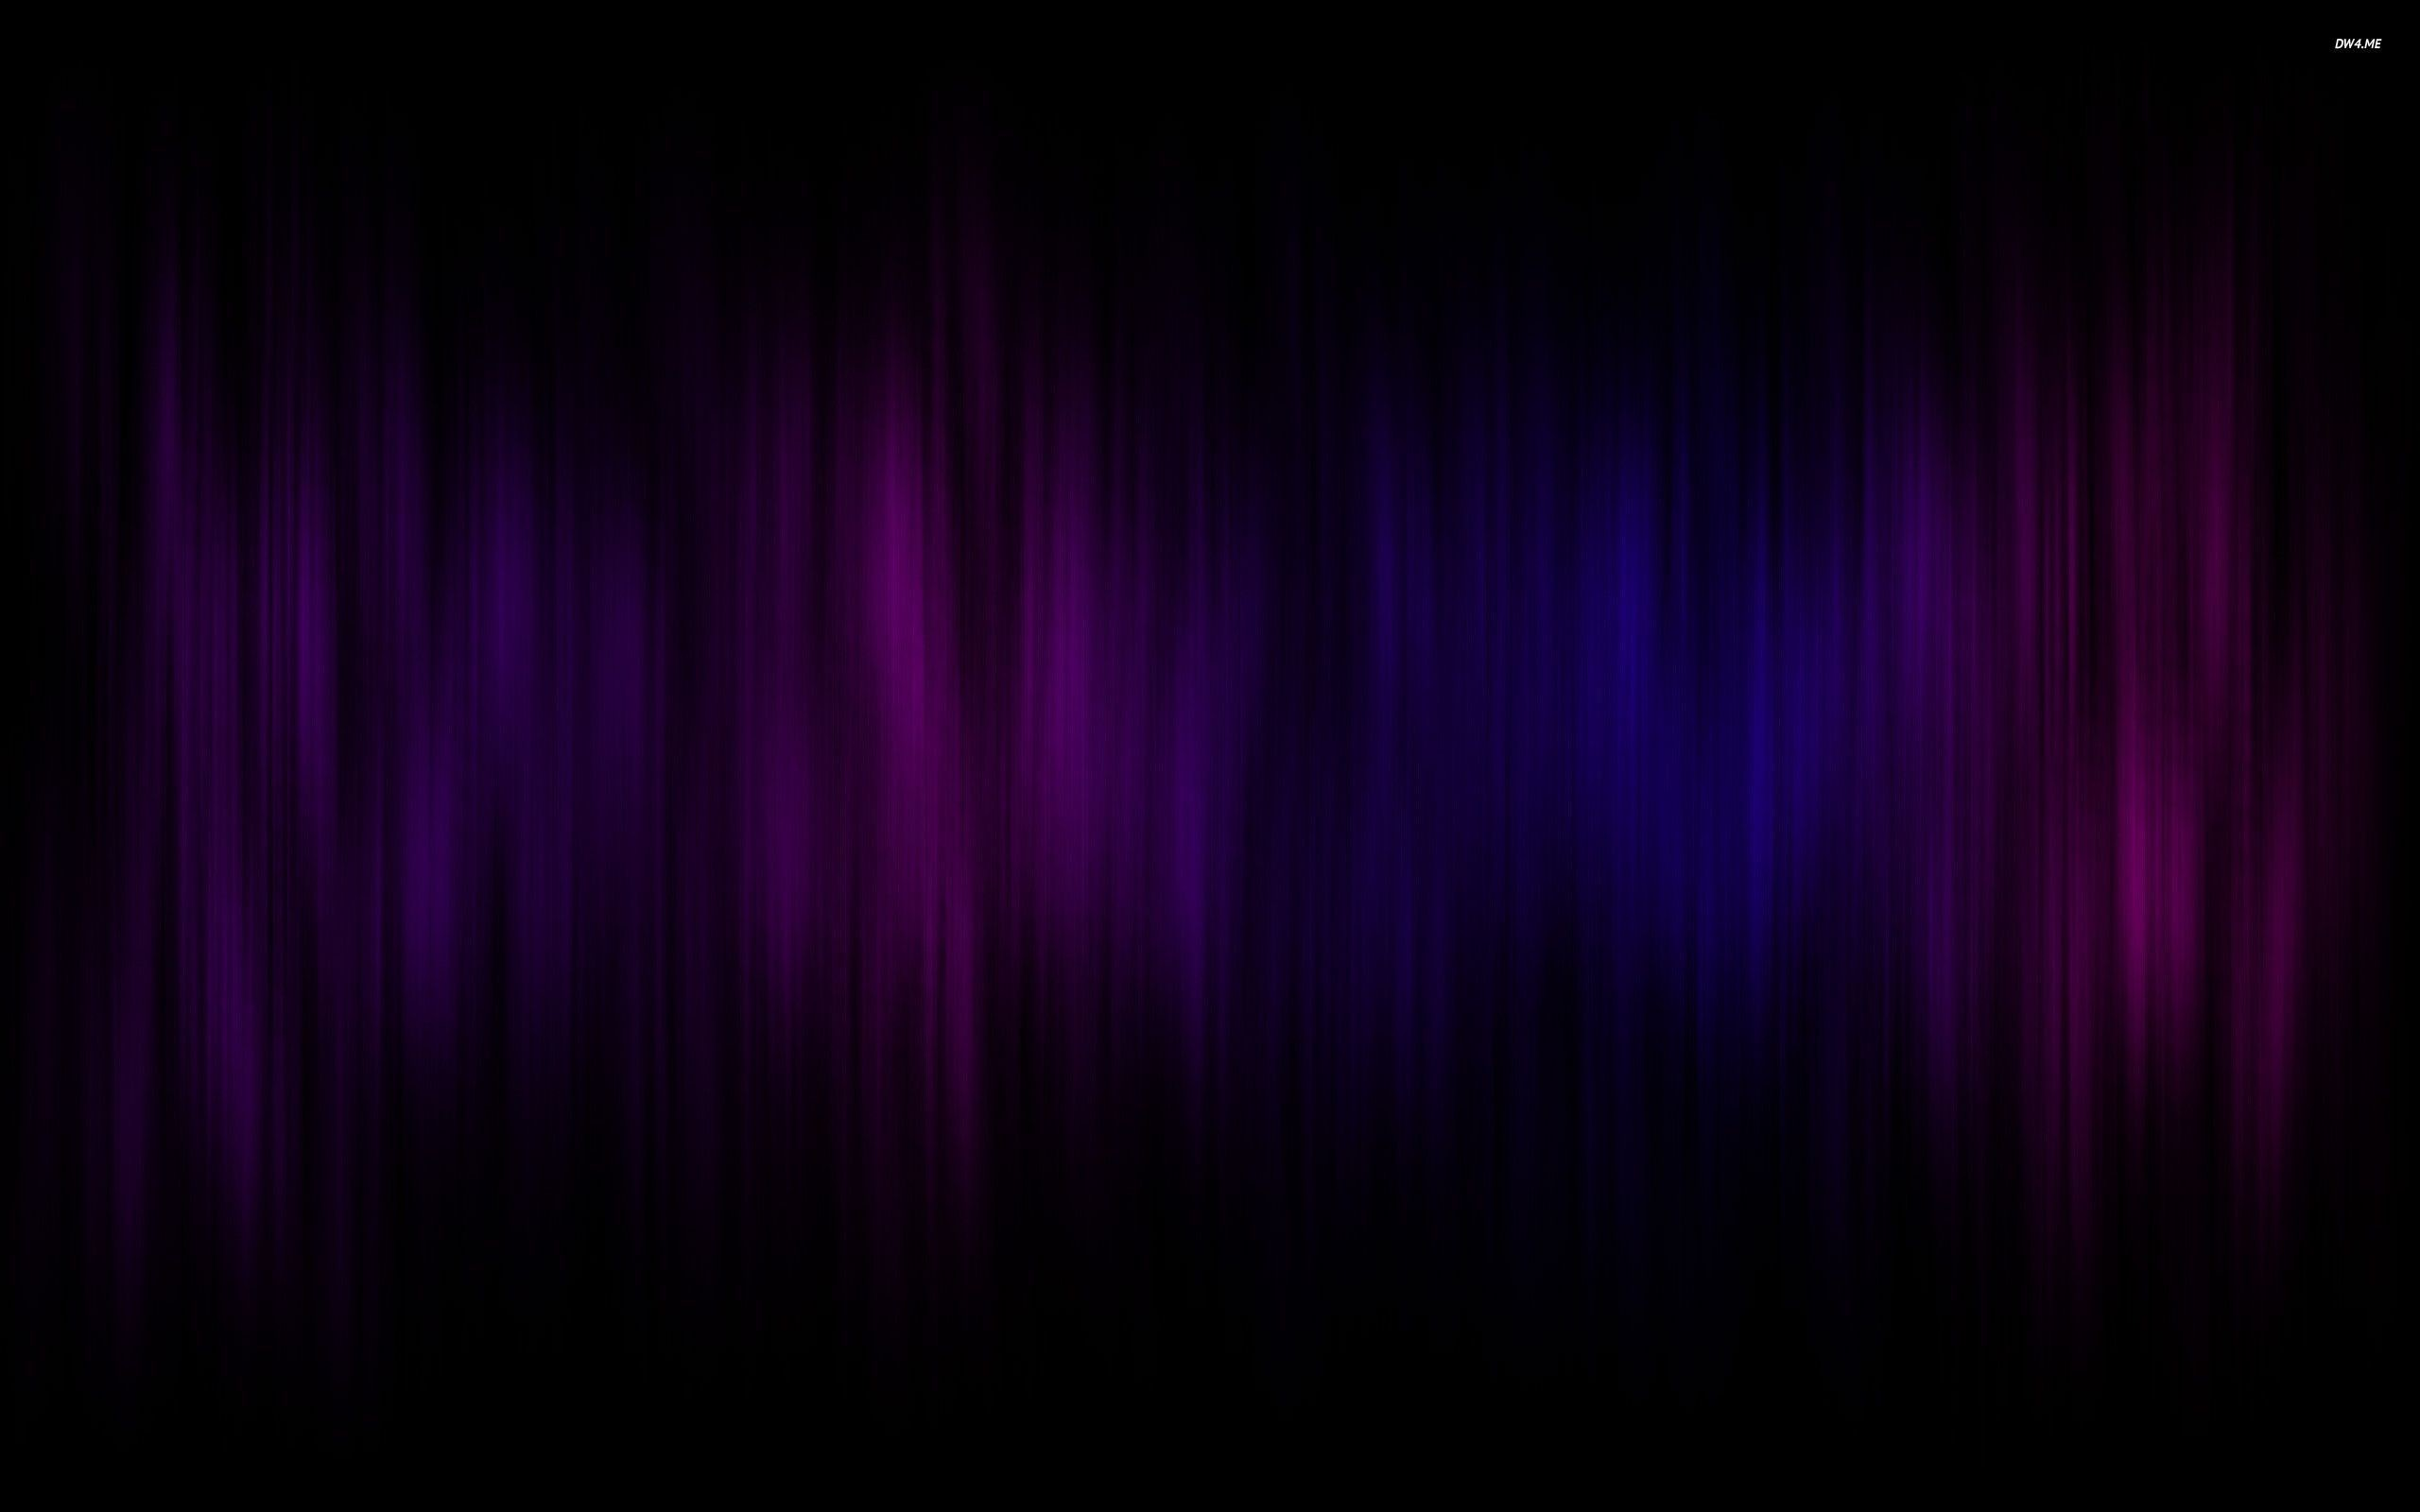 Dark Purple Background Images Black and Purpl...